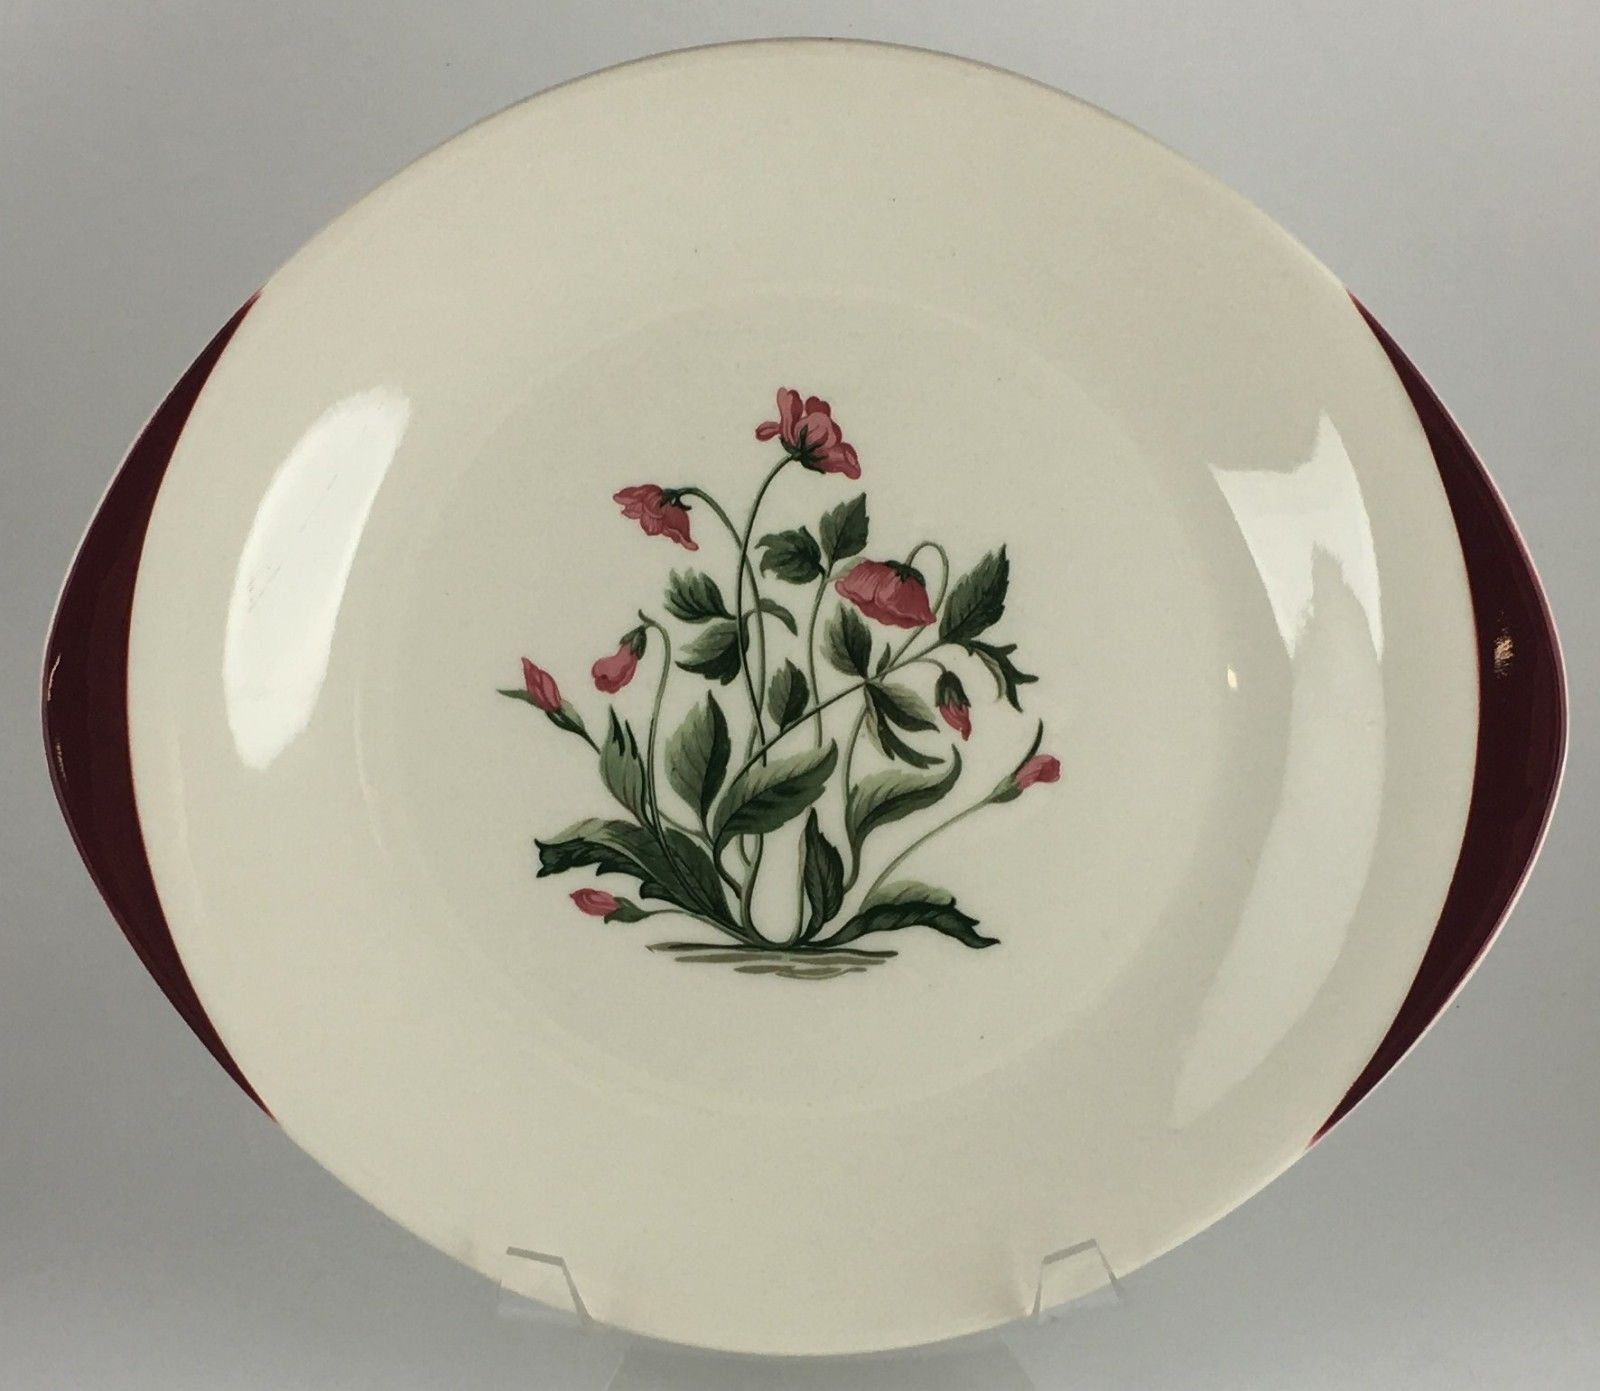 Primary image for Wedgwood MAYFIELD Ruby handled cake plate (SKU EC 222) FREE SHIPPING